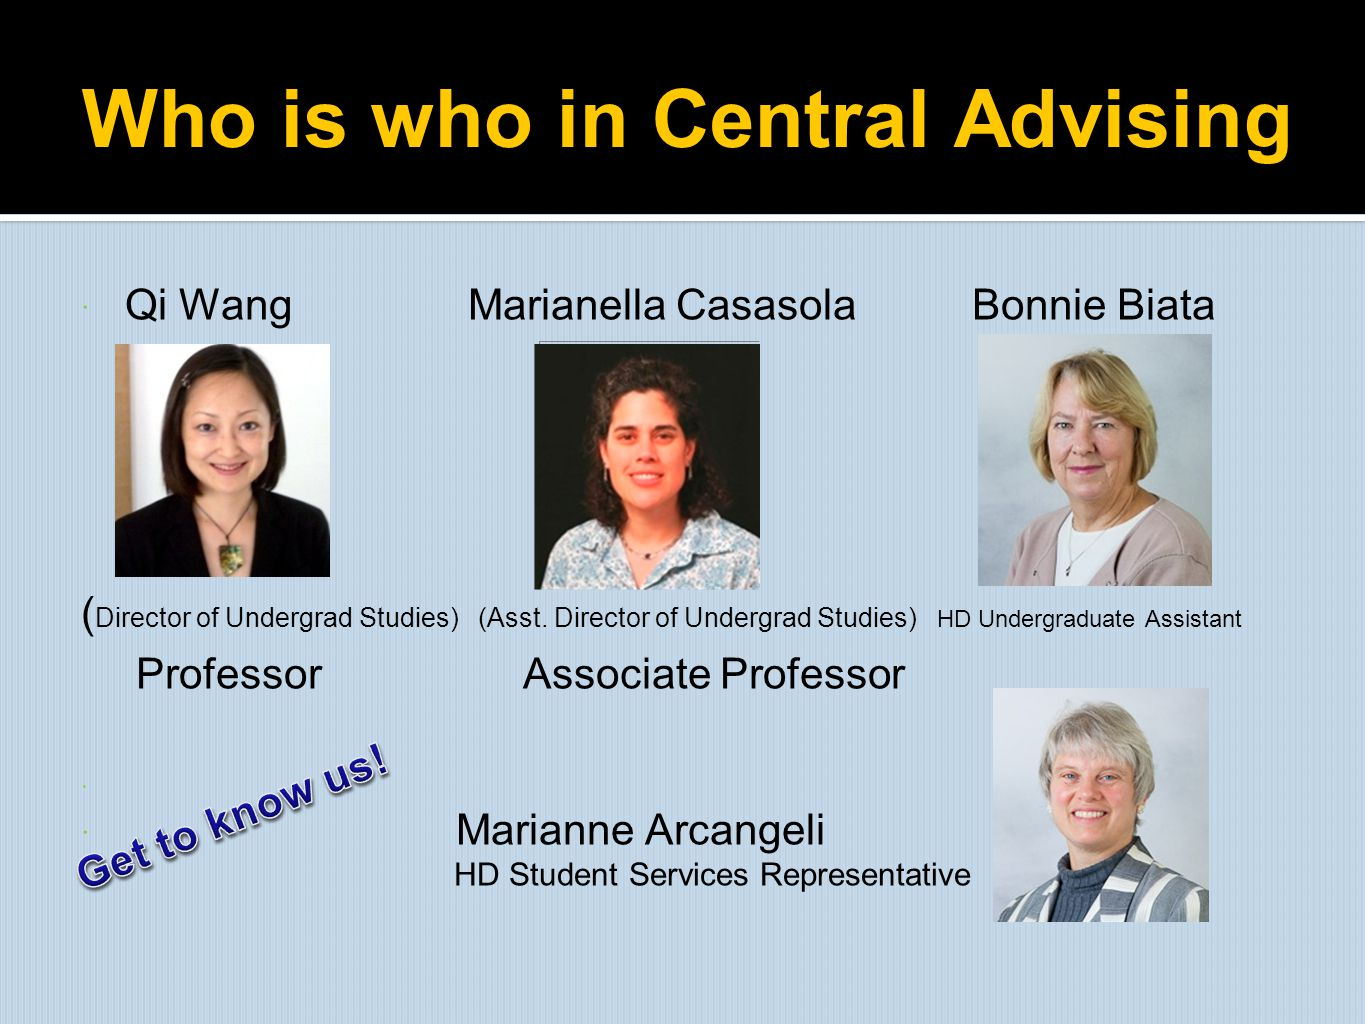 Who is who in Central Advising